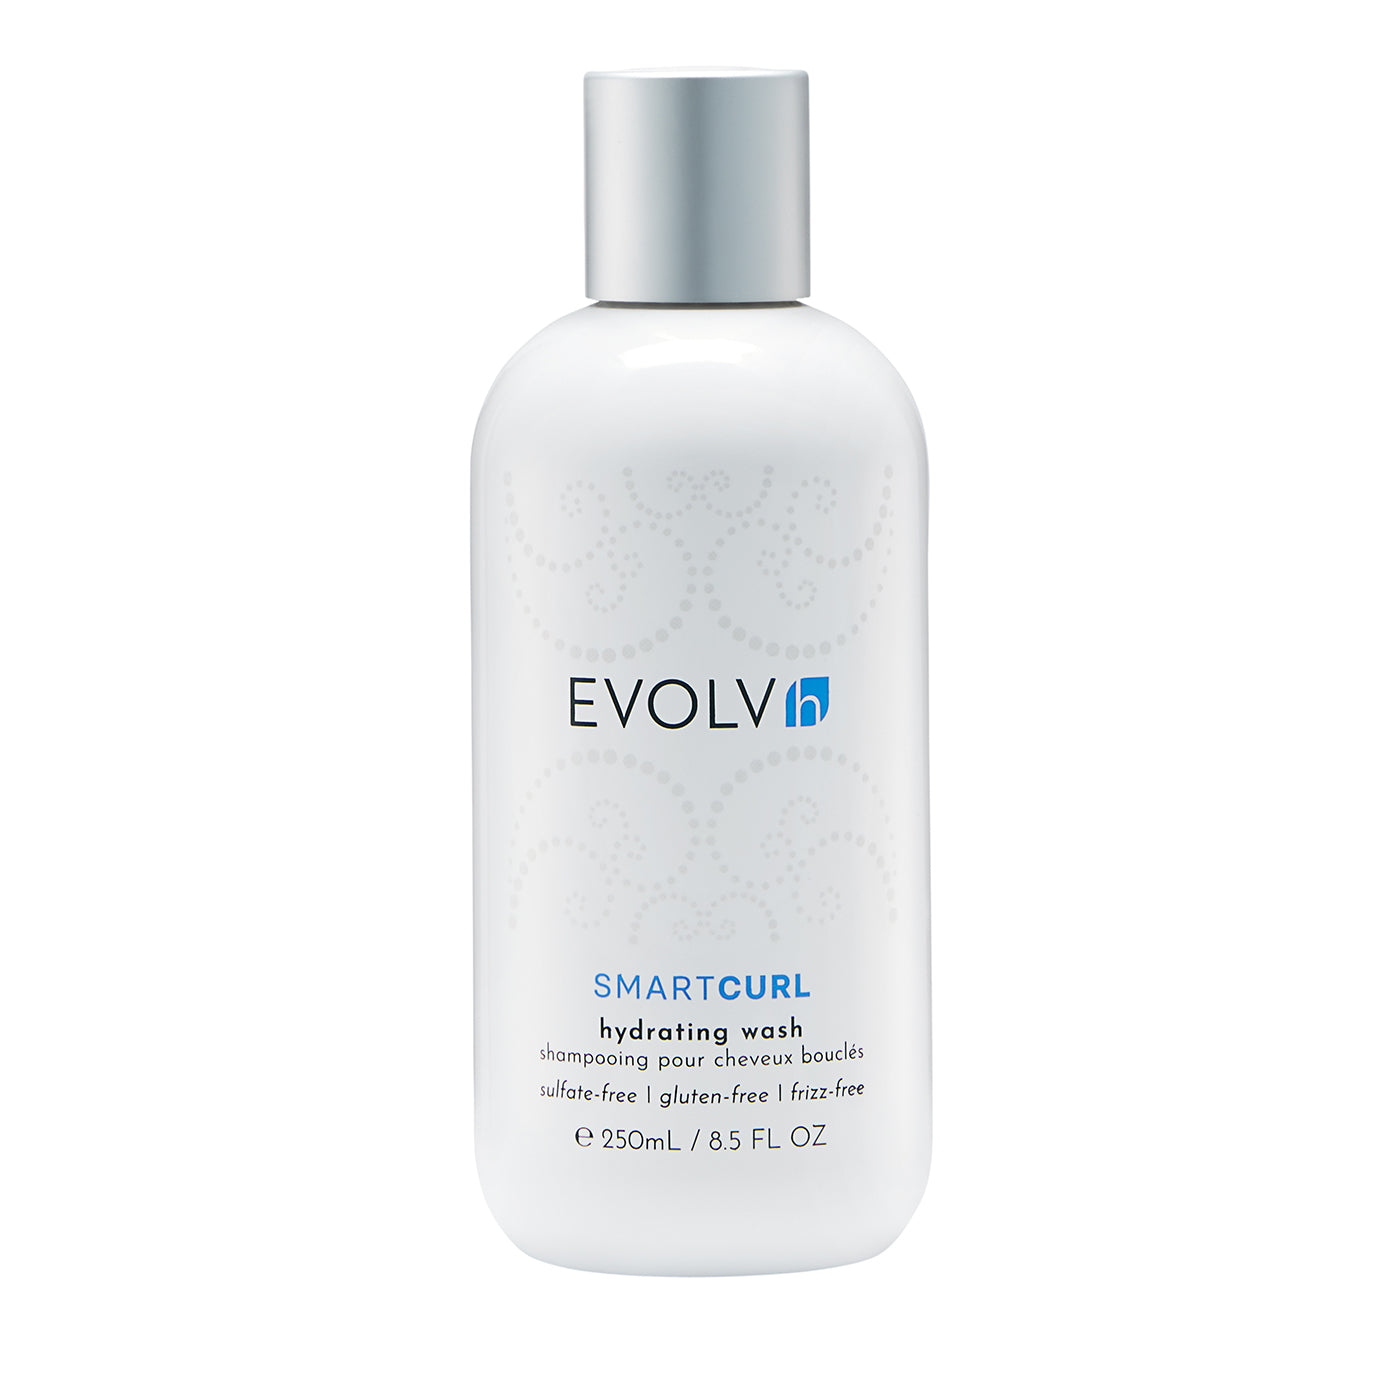 EVOLVh SmartCurl Hydrating Wash